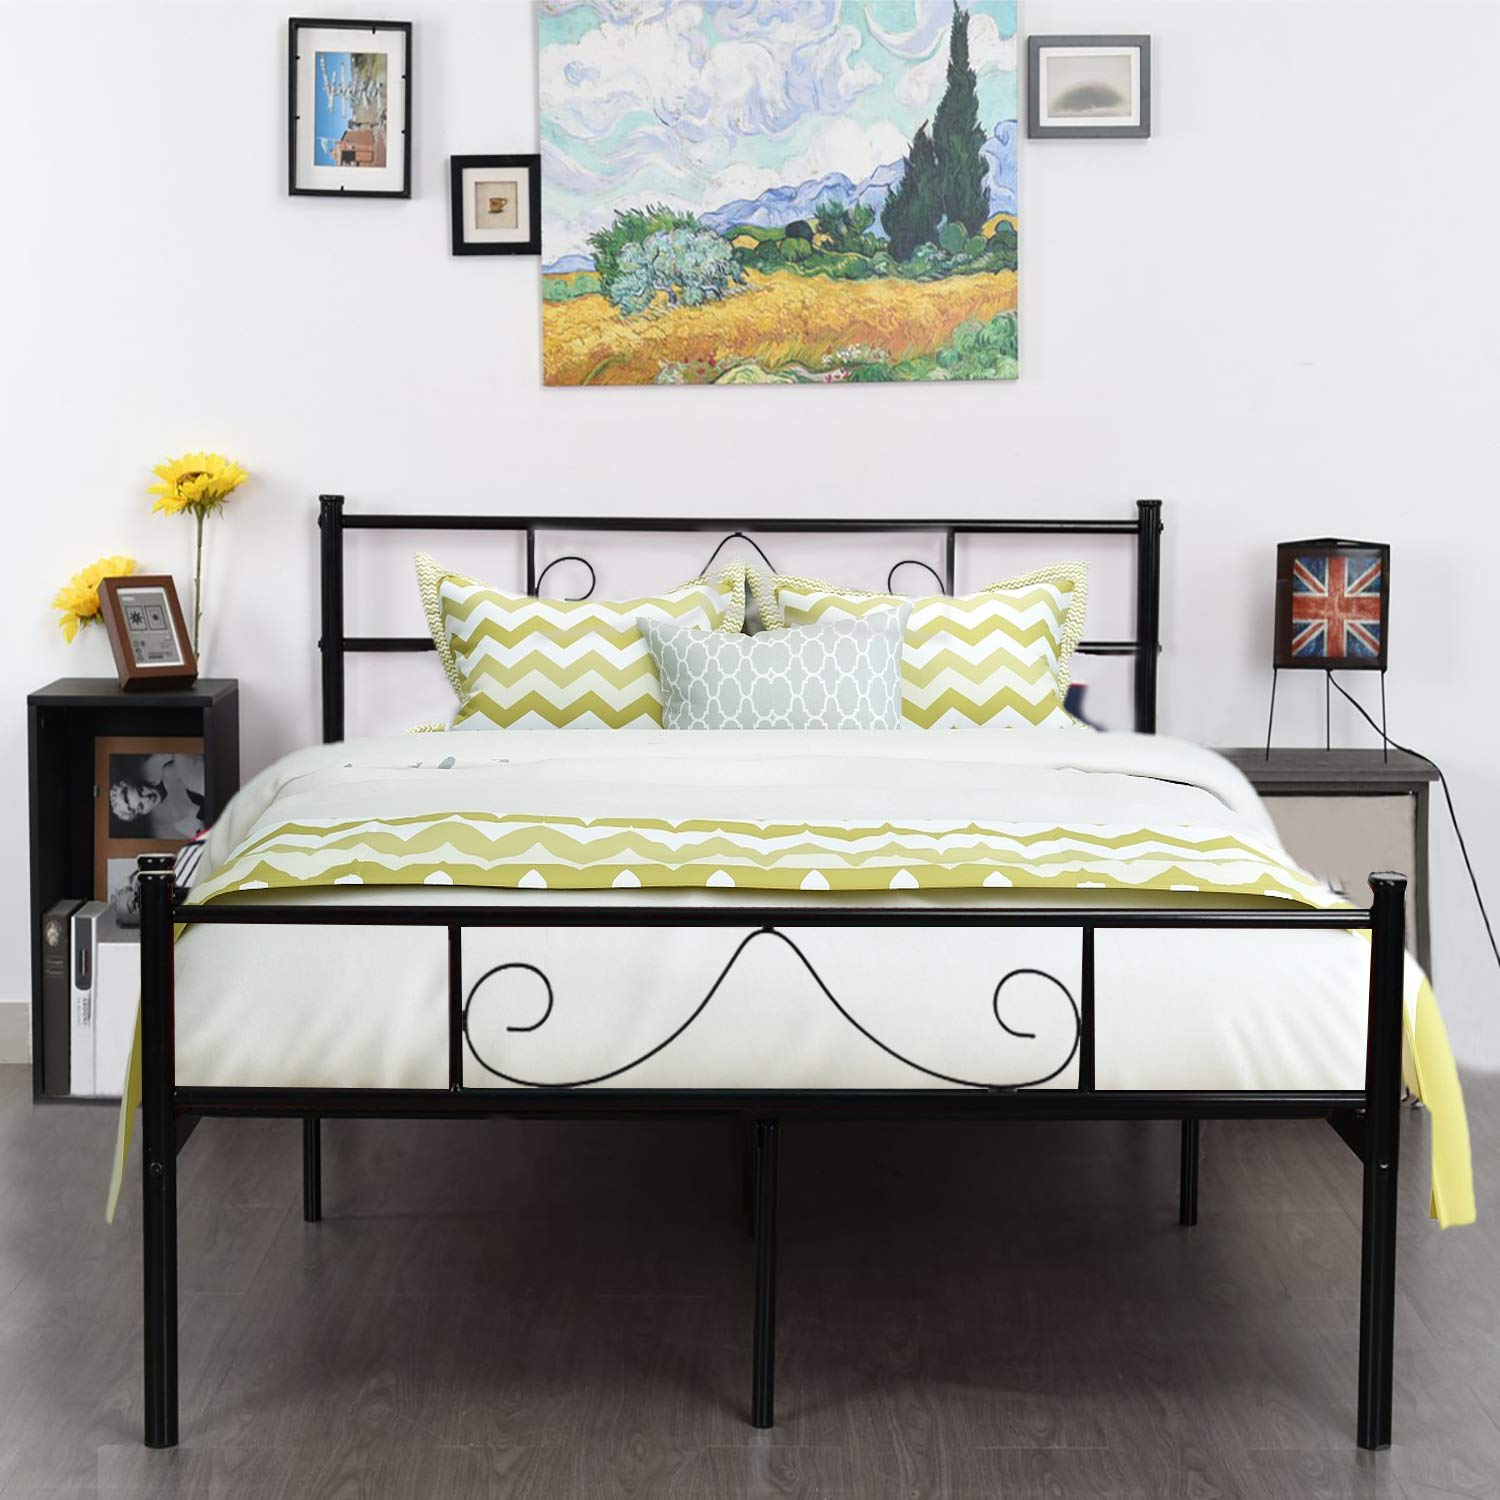 GreenForest Bed Frame Queen Size with Headboard and Stable Metal Slats Boxspring Replacement Platform Mattress Base,Black